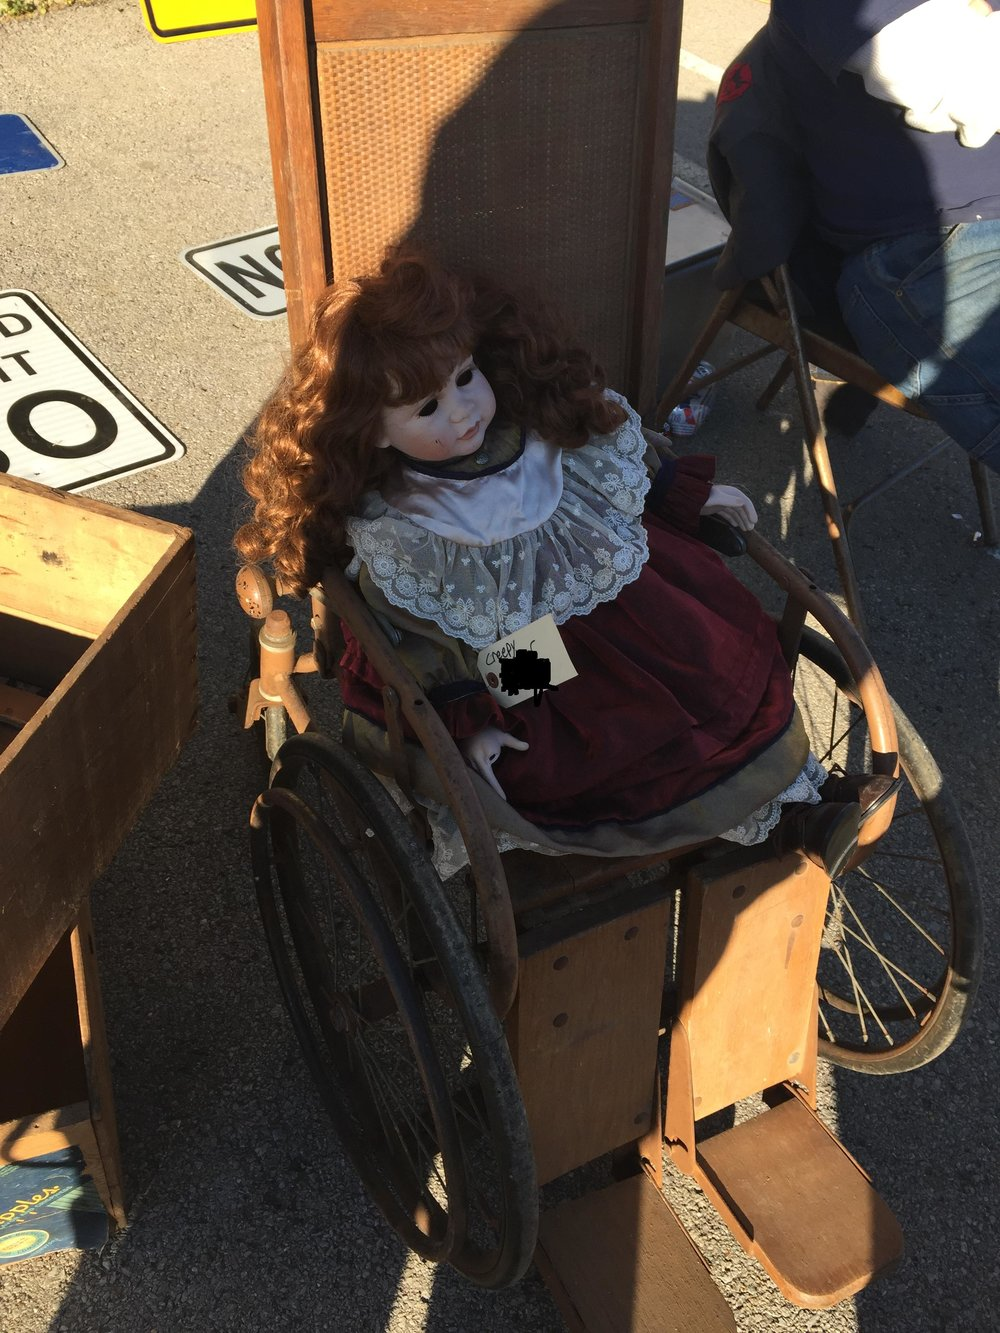 creepy eyeless doll in antique wheelchair.